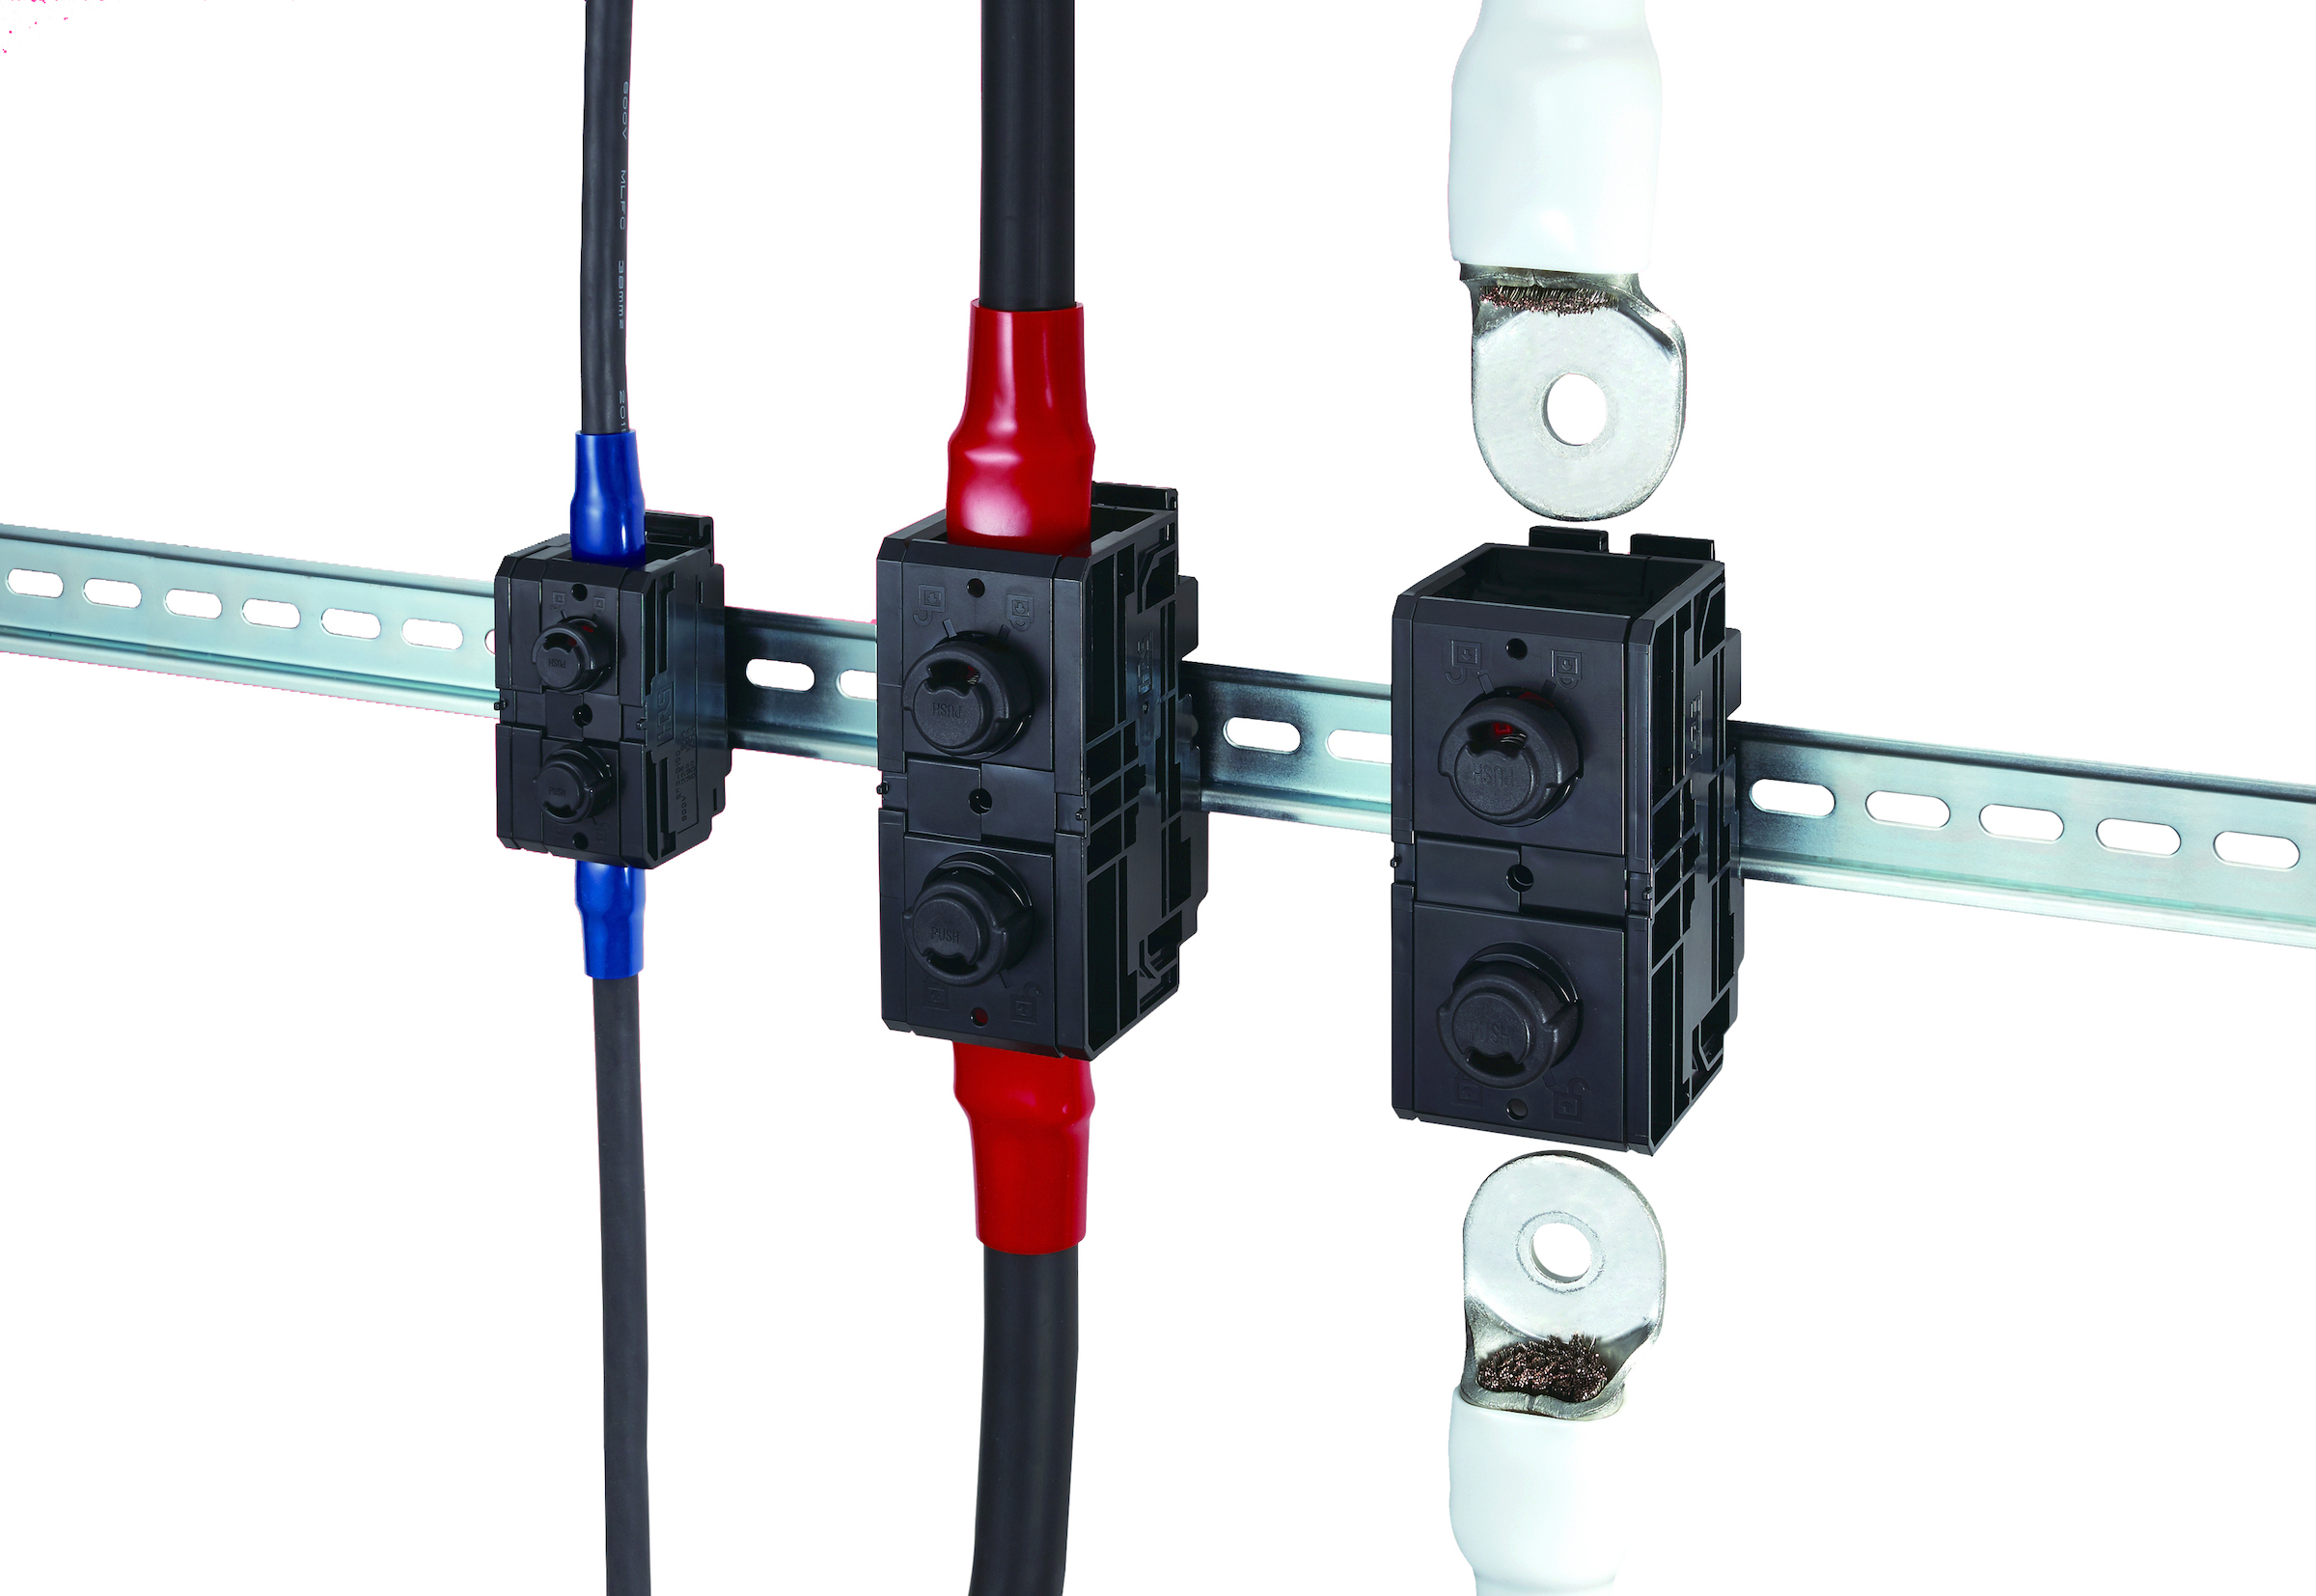 Screwless Terminal Block Reduces Maintenance by up to 40%